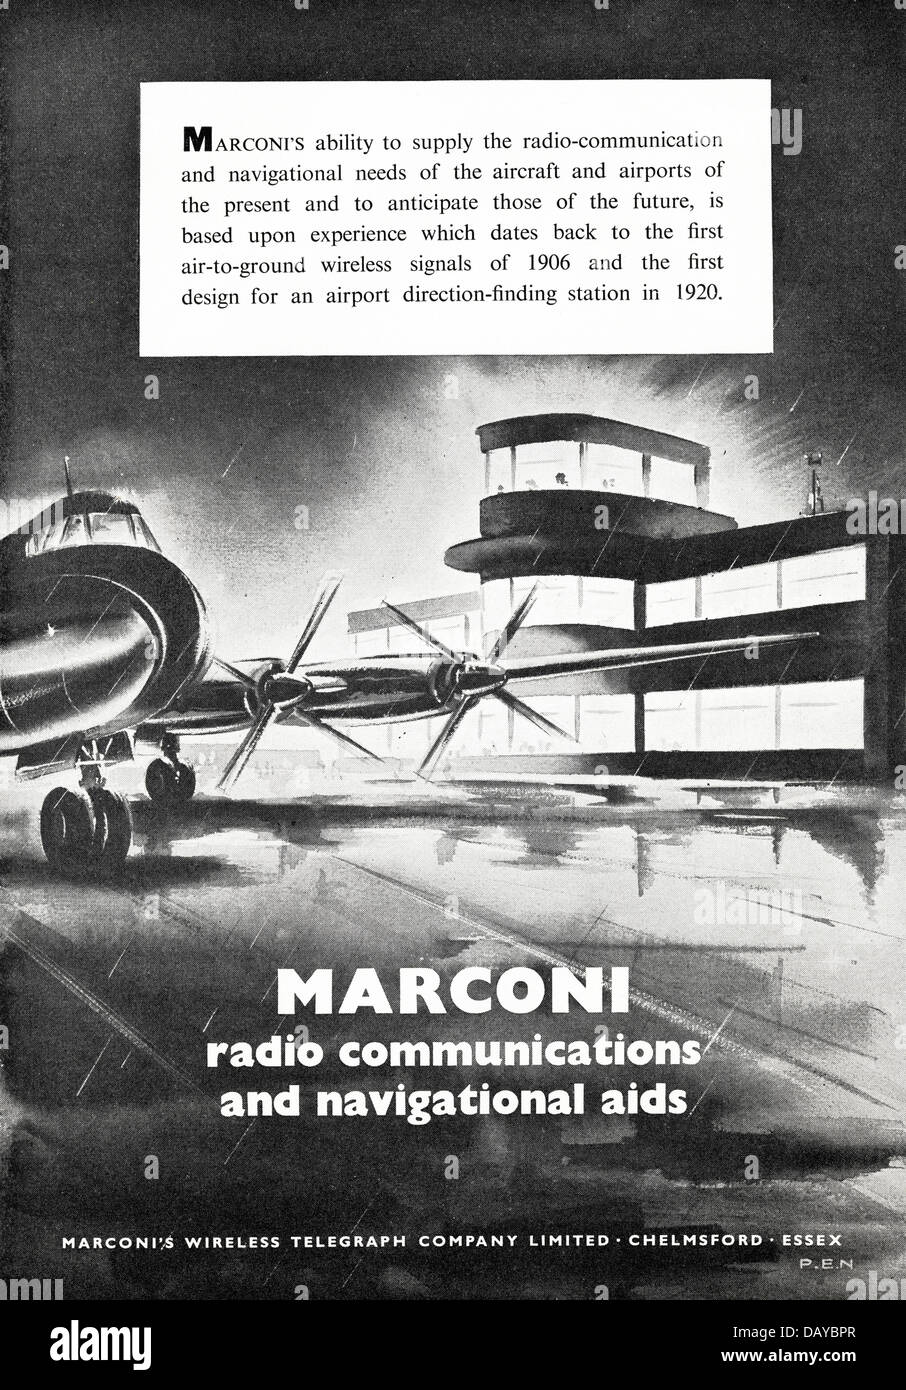 Advert for aircraft radio communication and navigational aids by